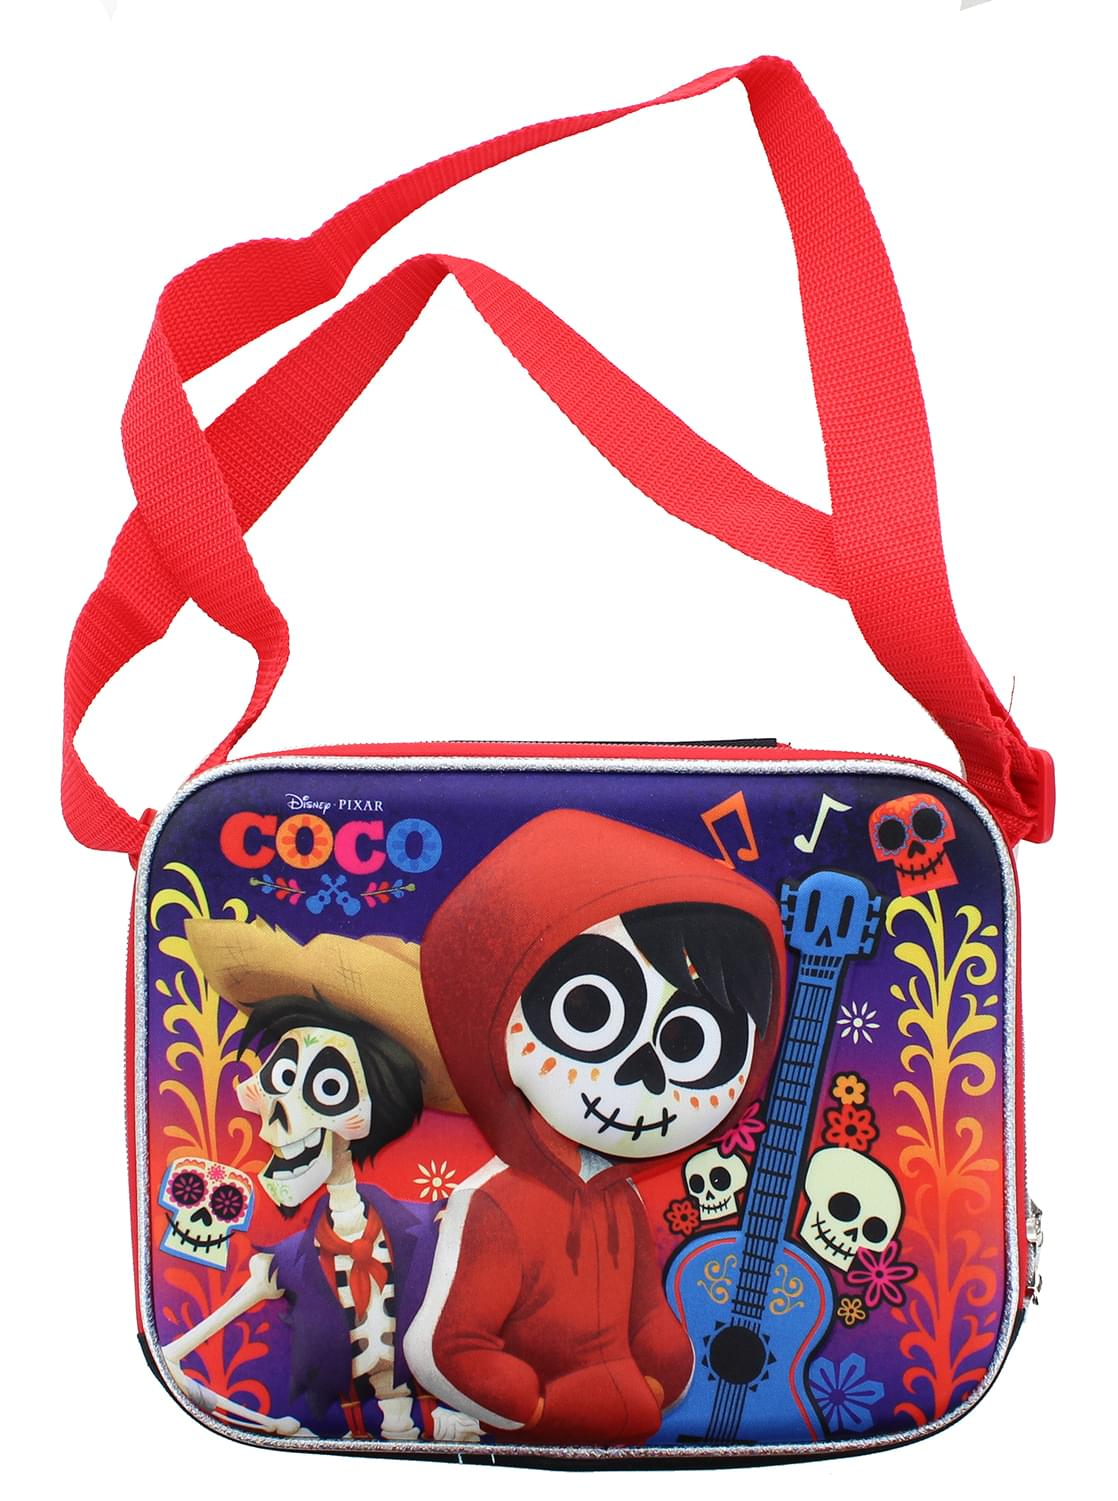 Disney Pixar COCO Lunch Tote w/ Long Strap